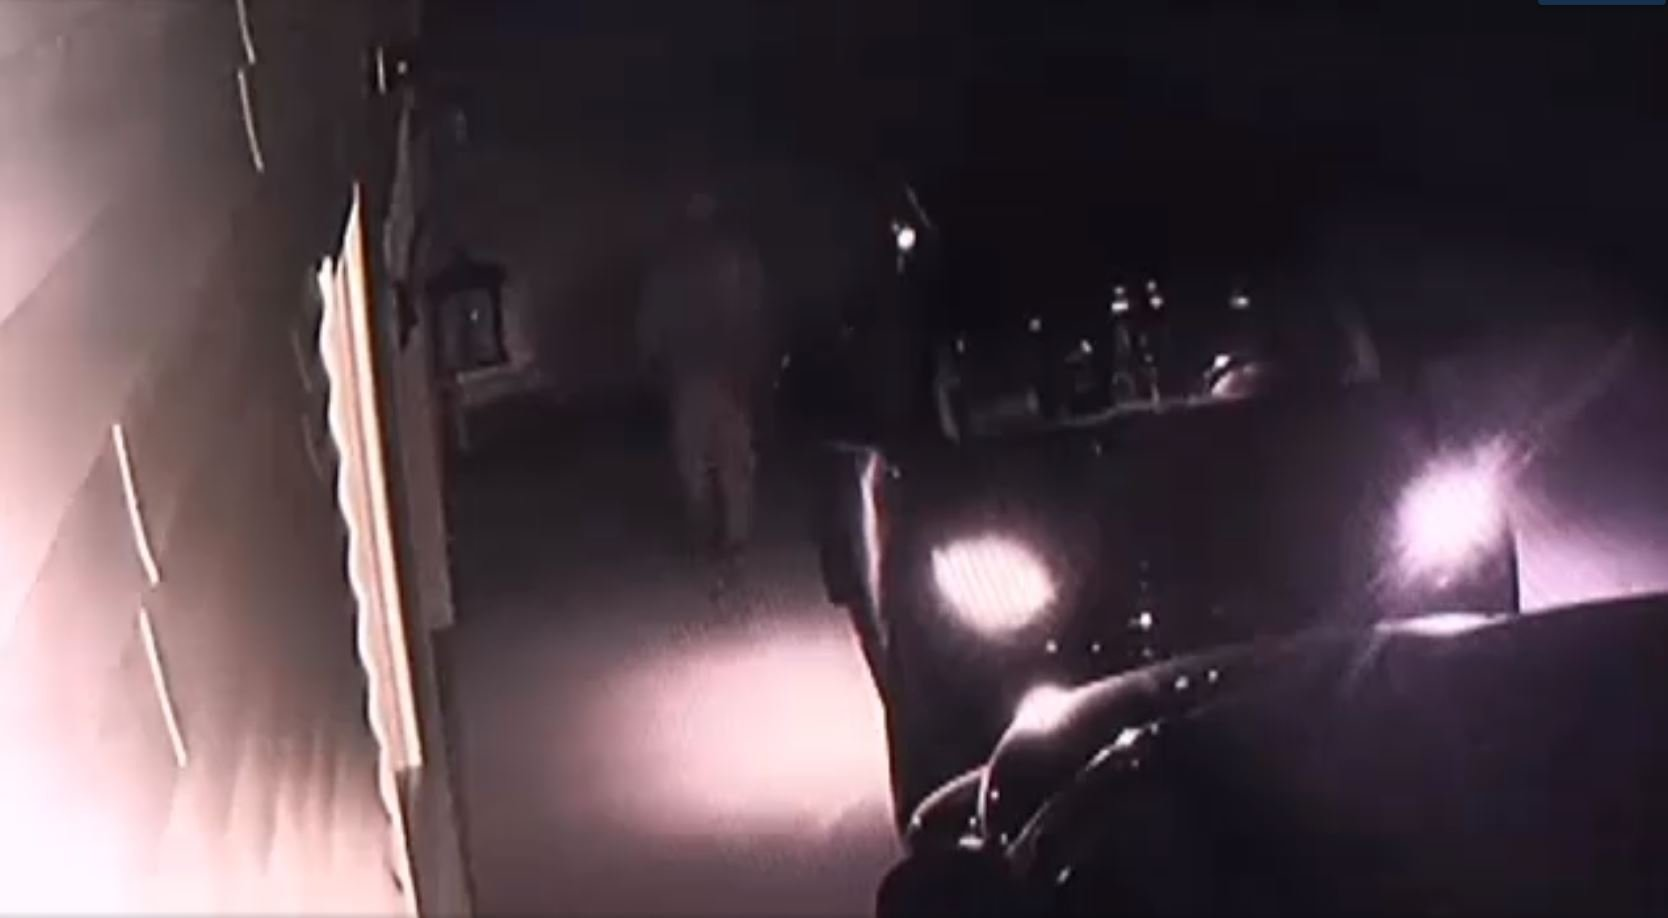 Suspect in auto break-ins caught on camera (Source: iWitness)